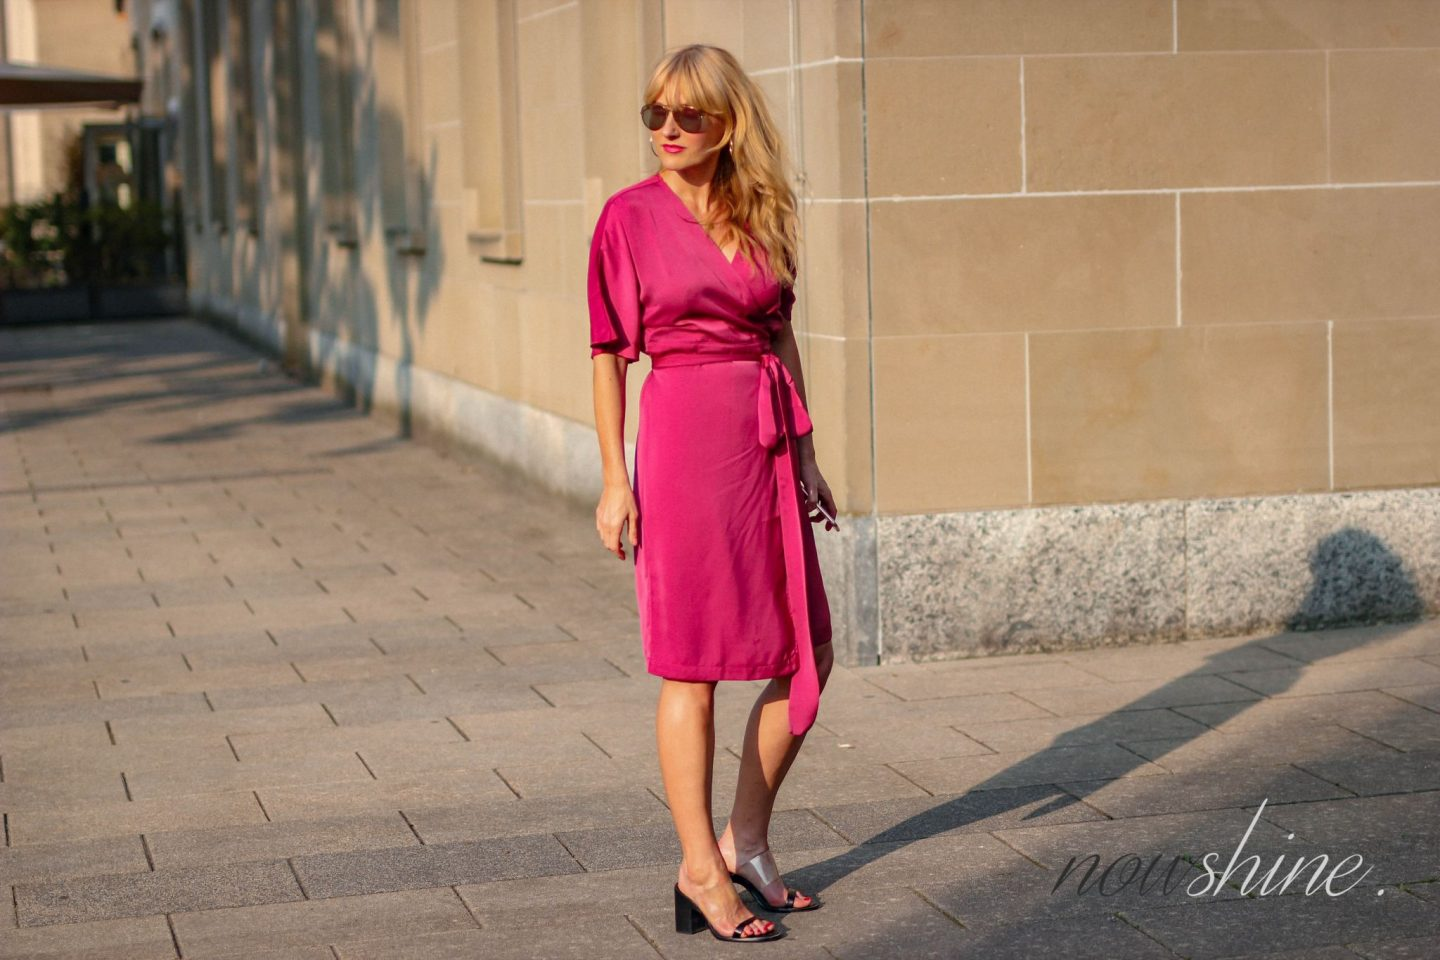 Wrap Dress - Wickelkleid im Kimono Stil von Edited - Nowshine ü 40 Blog